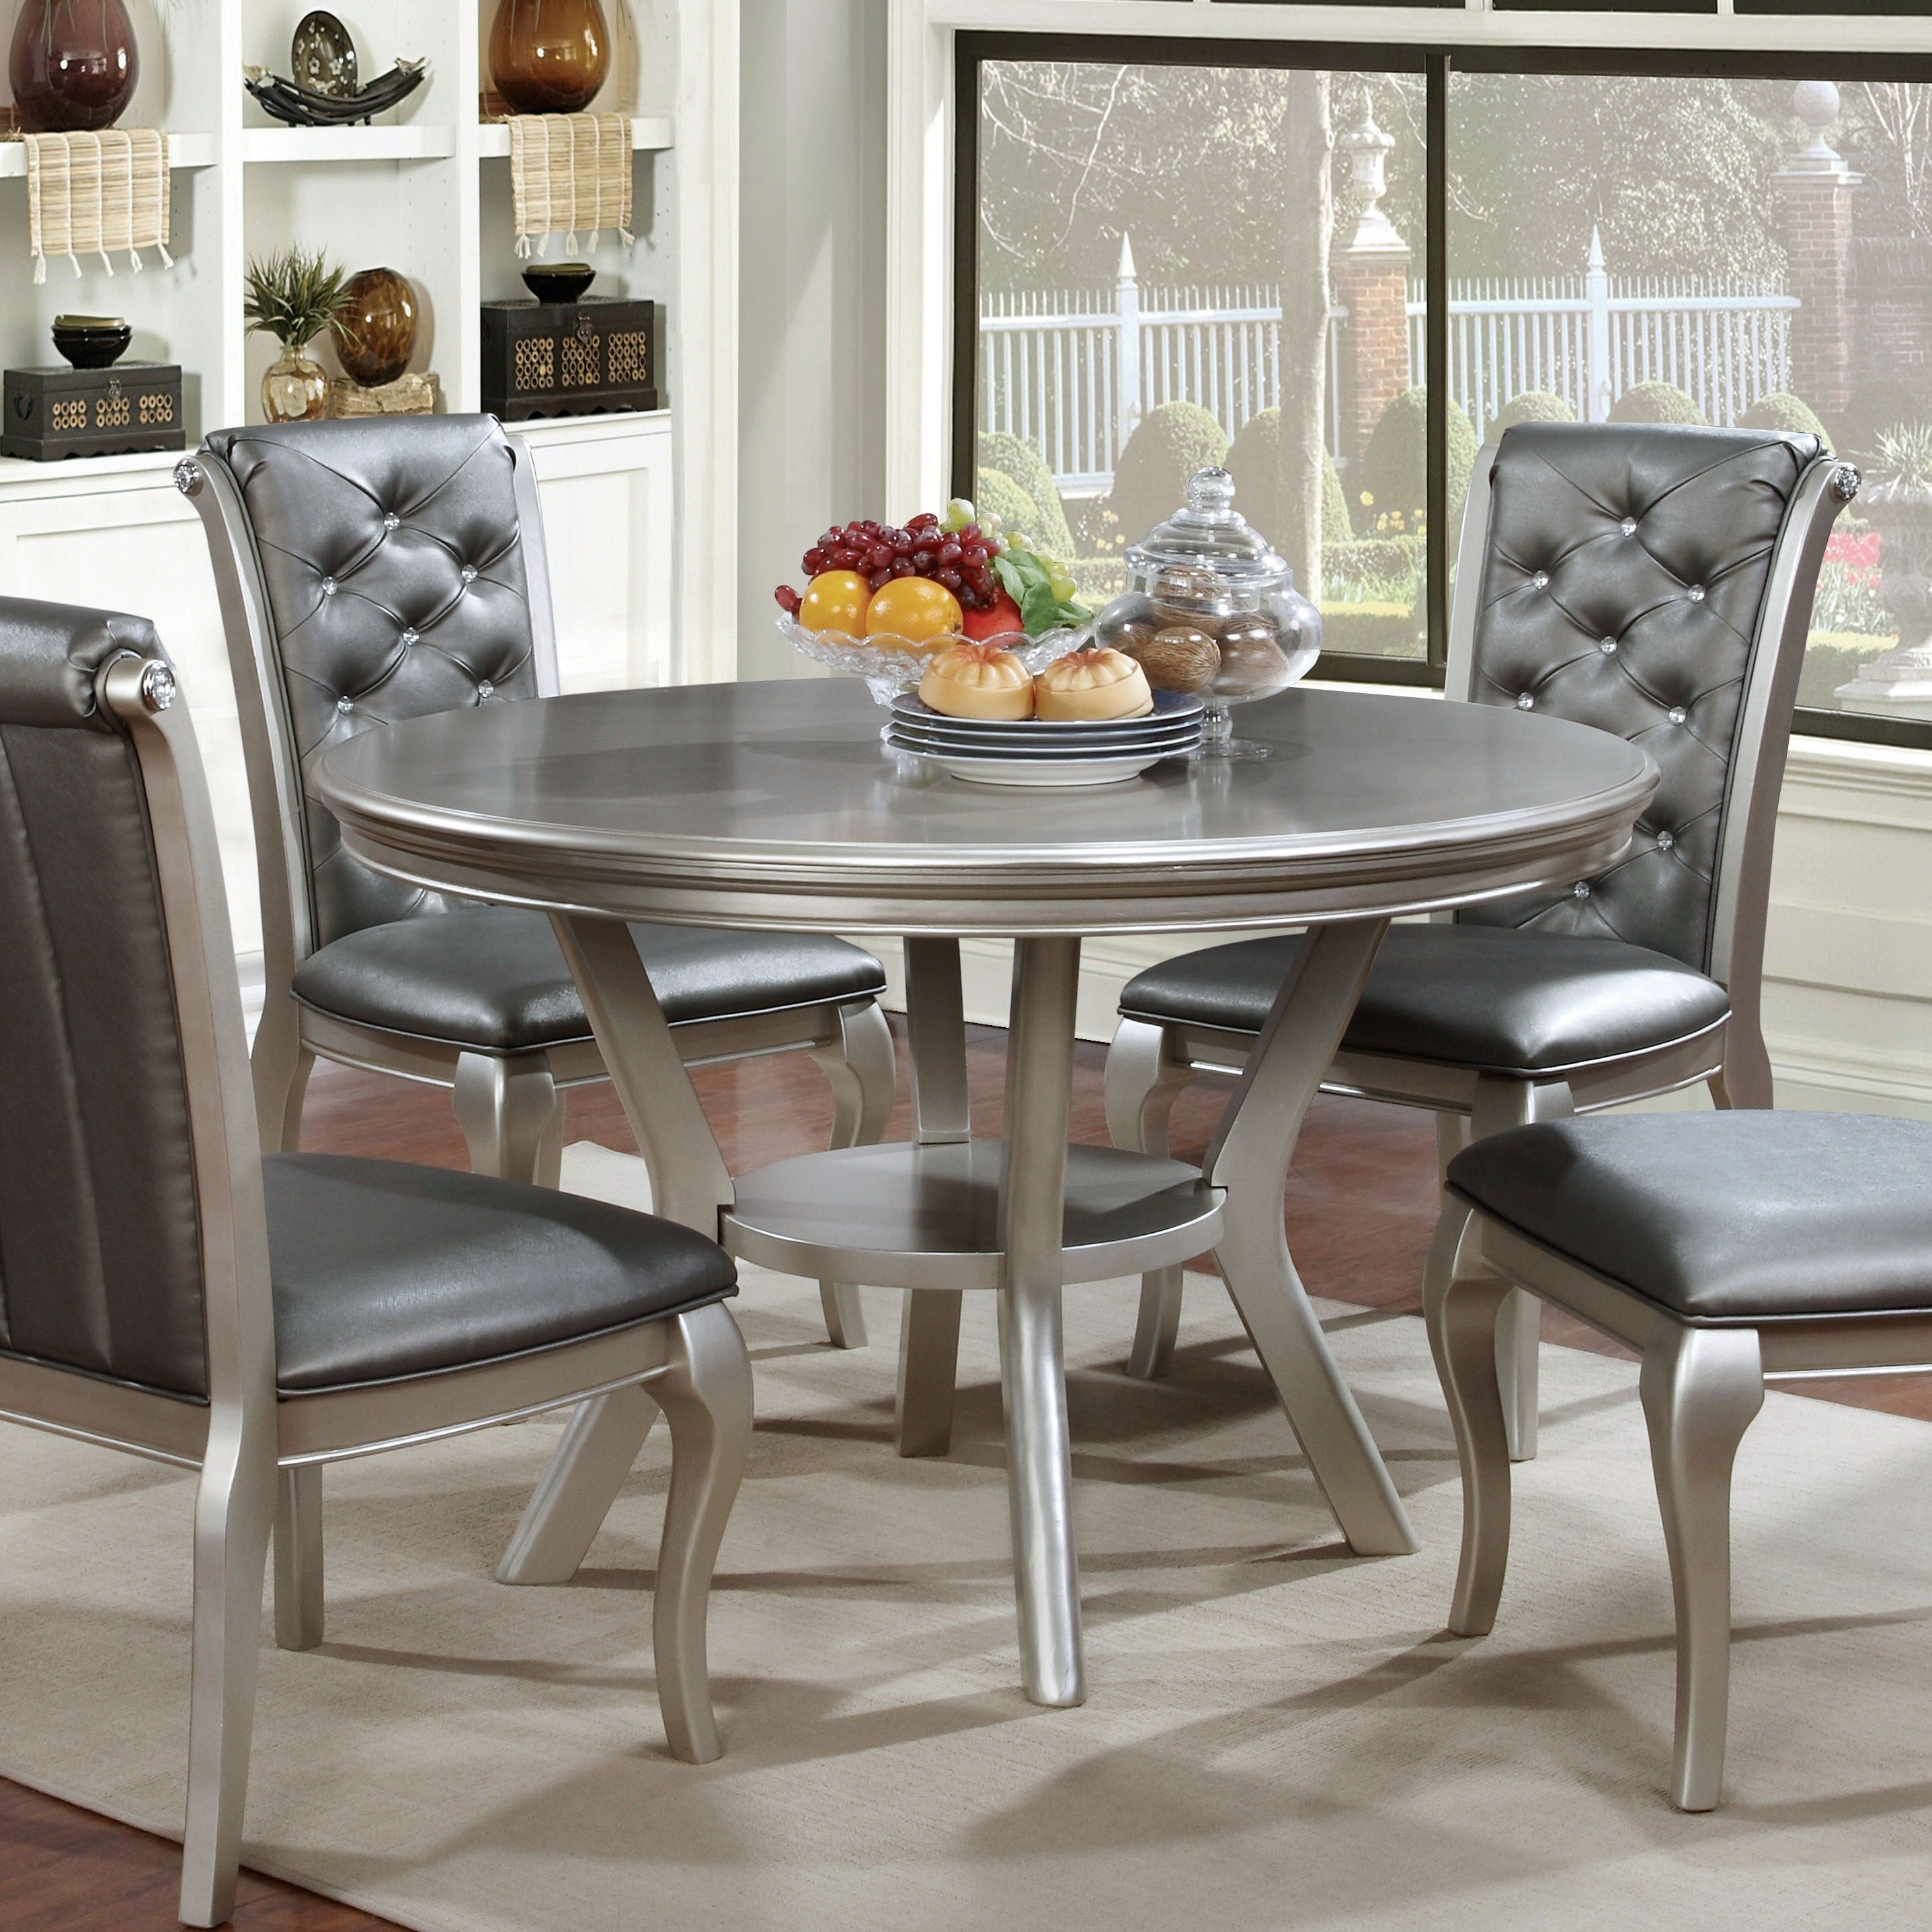 Furniture of America Tily Transitional Gold 48-inch Round Dining Table -  Champagne